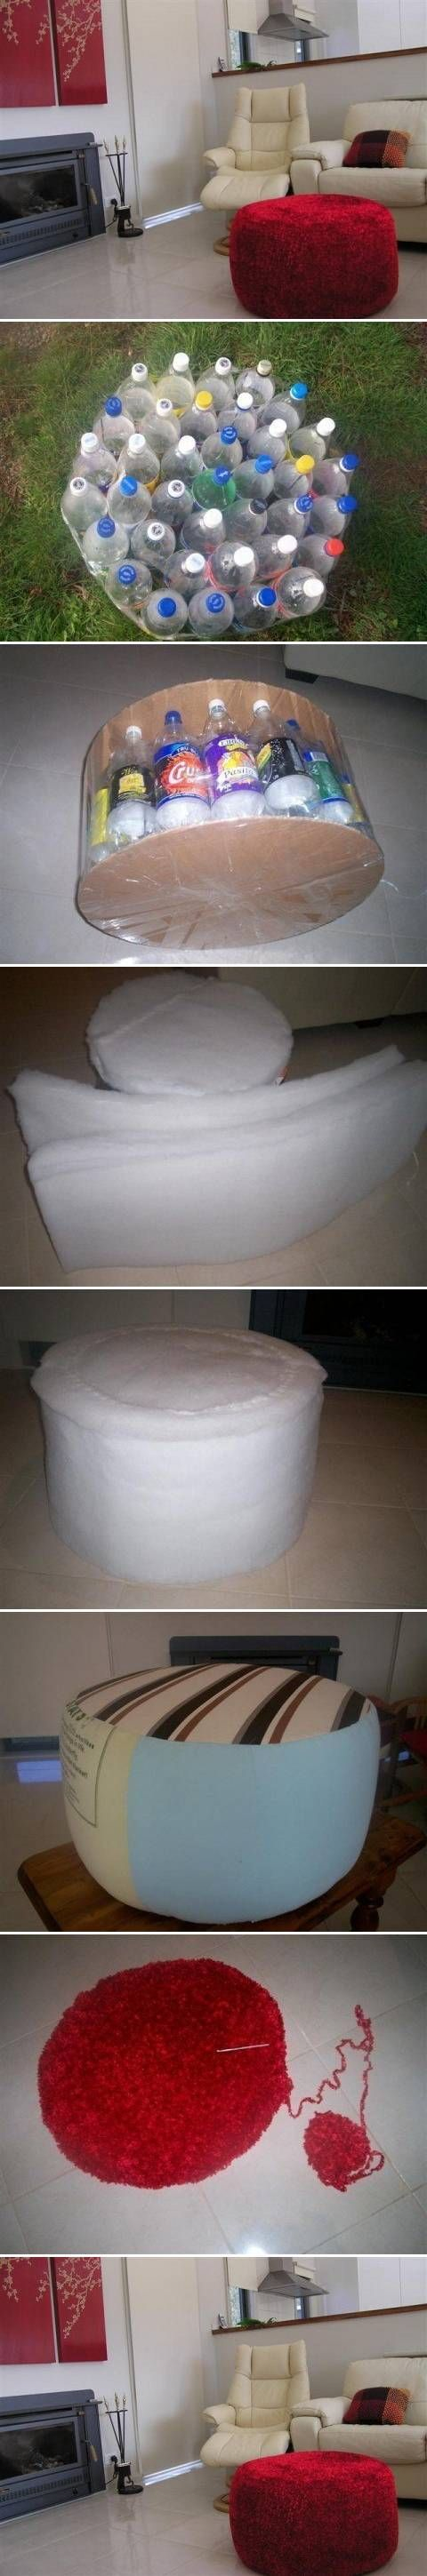 DIY Simple Ottoman from Plastic Bottles | iCreativeIdeas.com Like Us on Facebook ==> https://www.facebook.com/icreativeideas